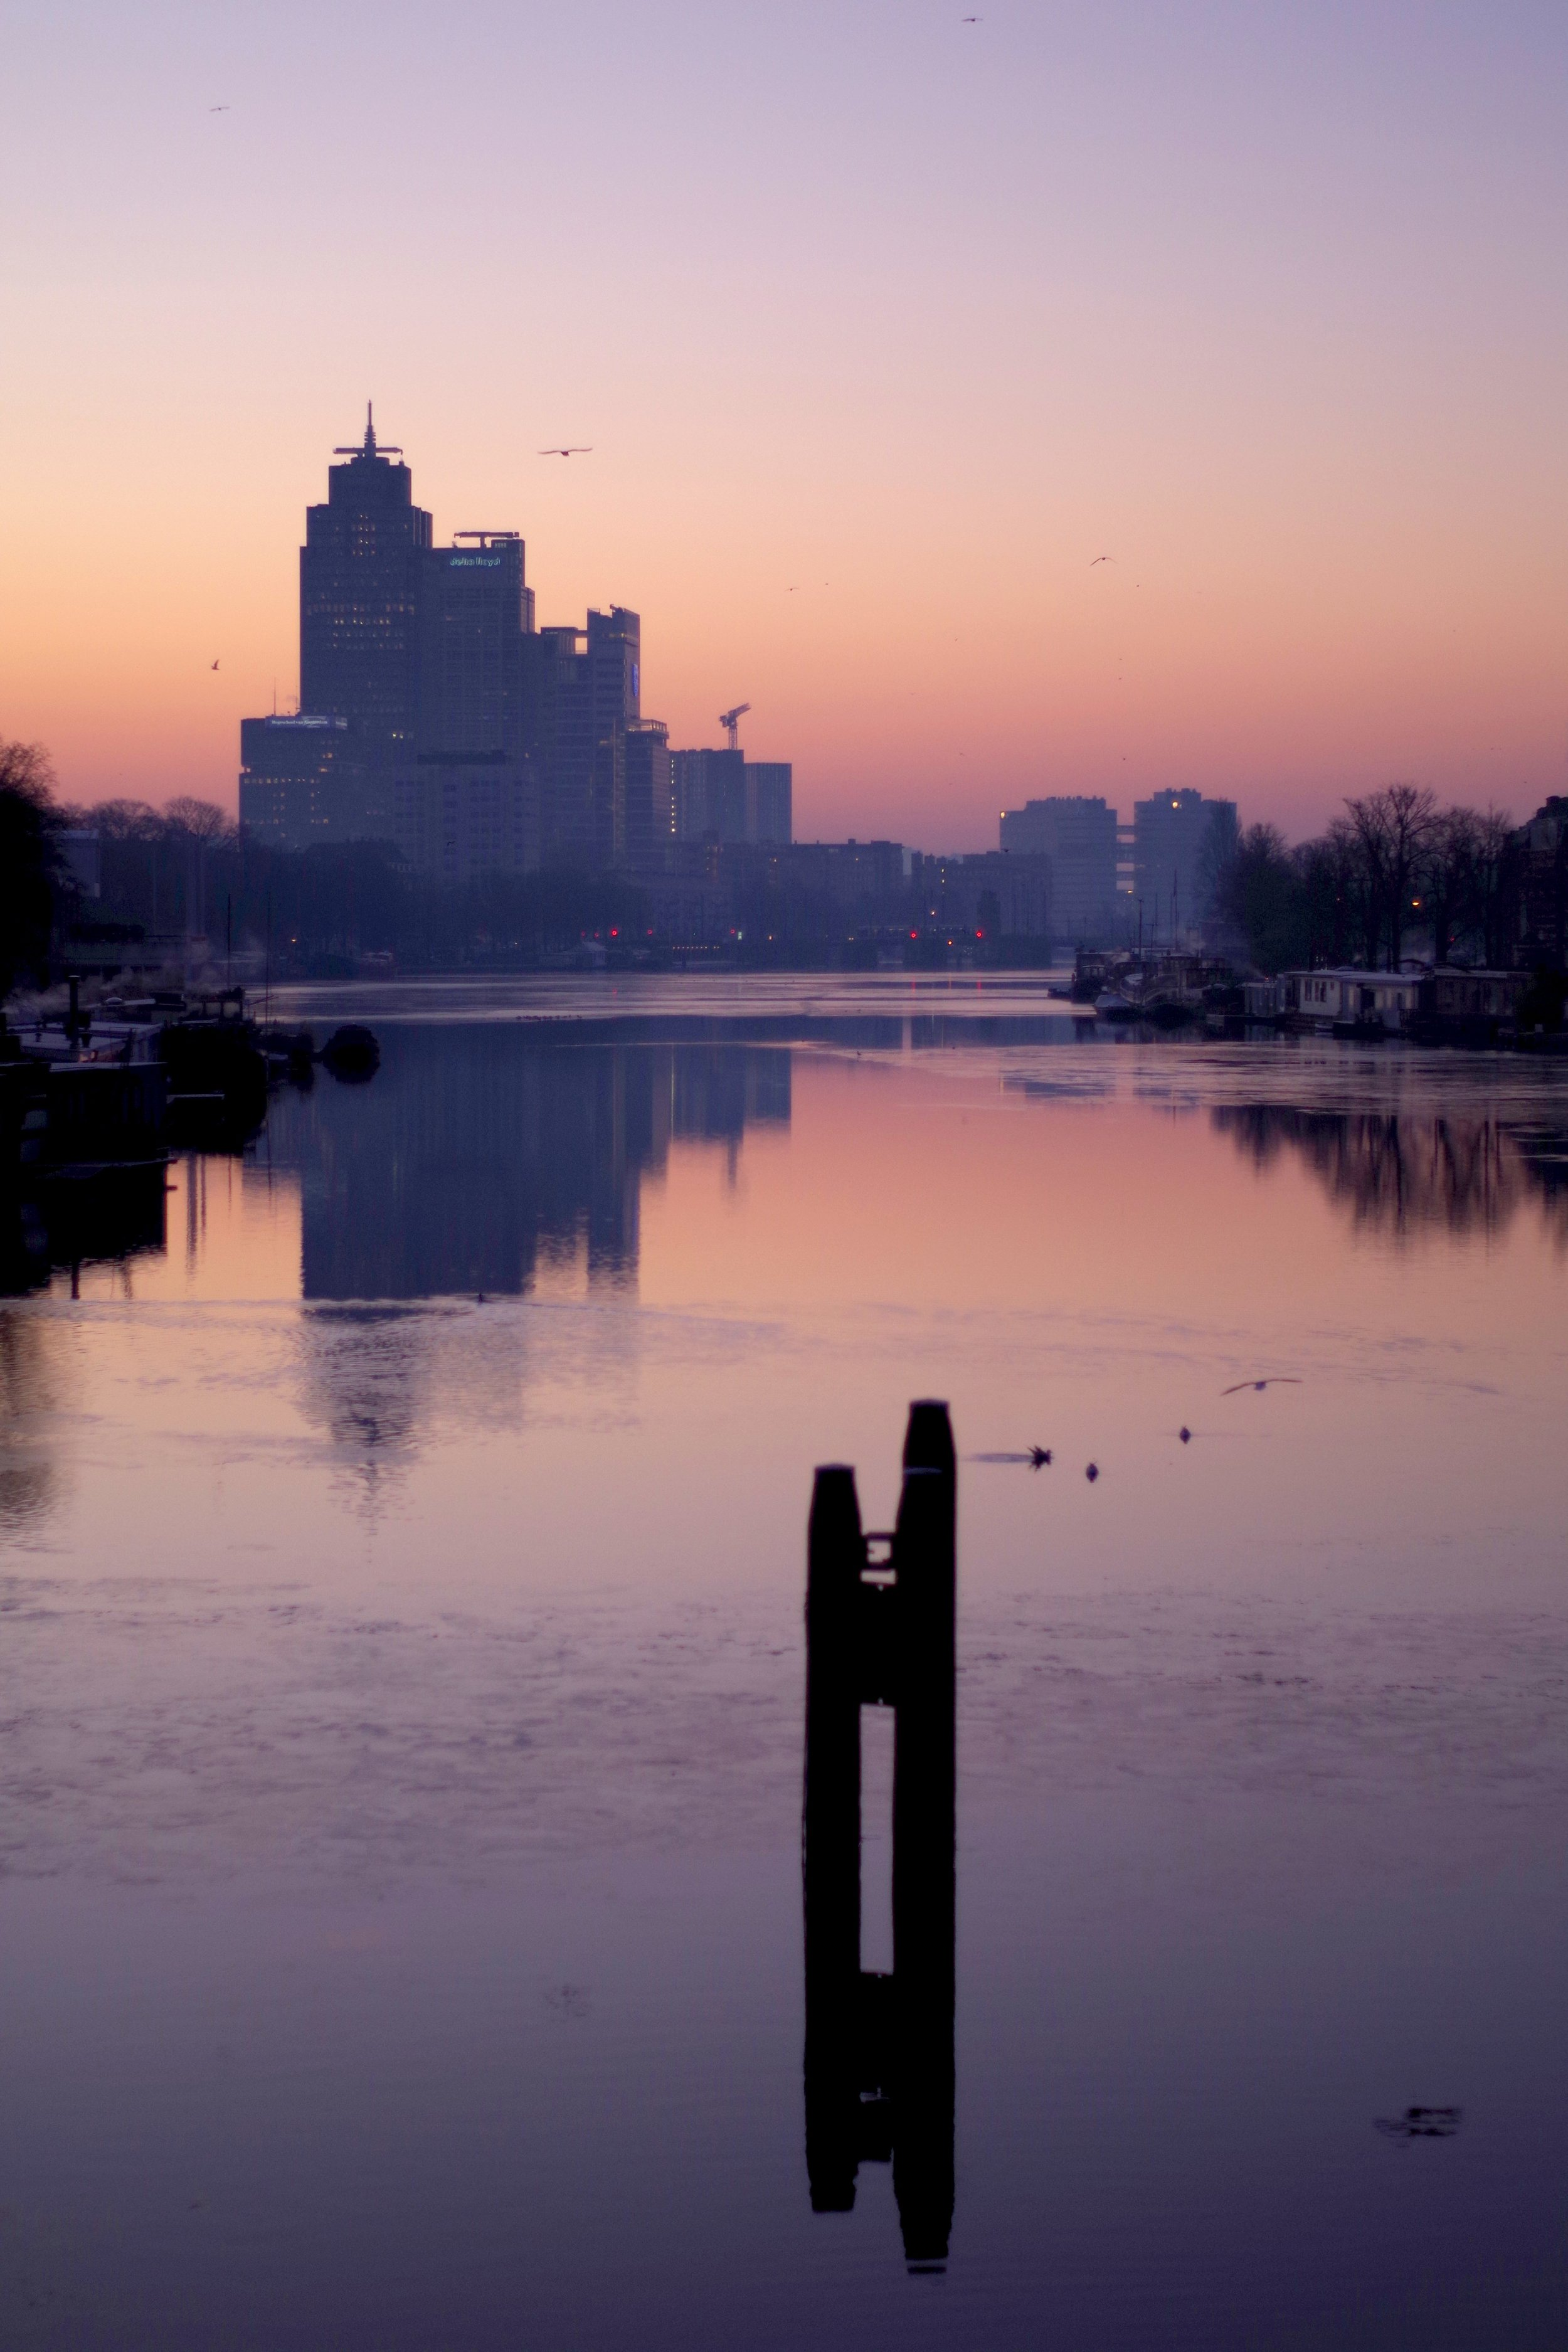 The Amstel river.